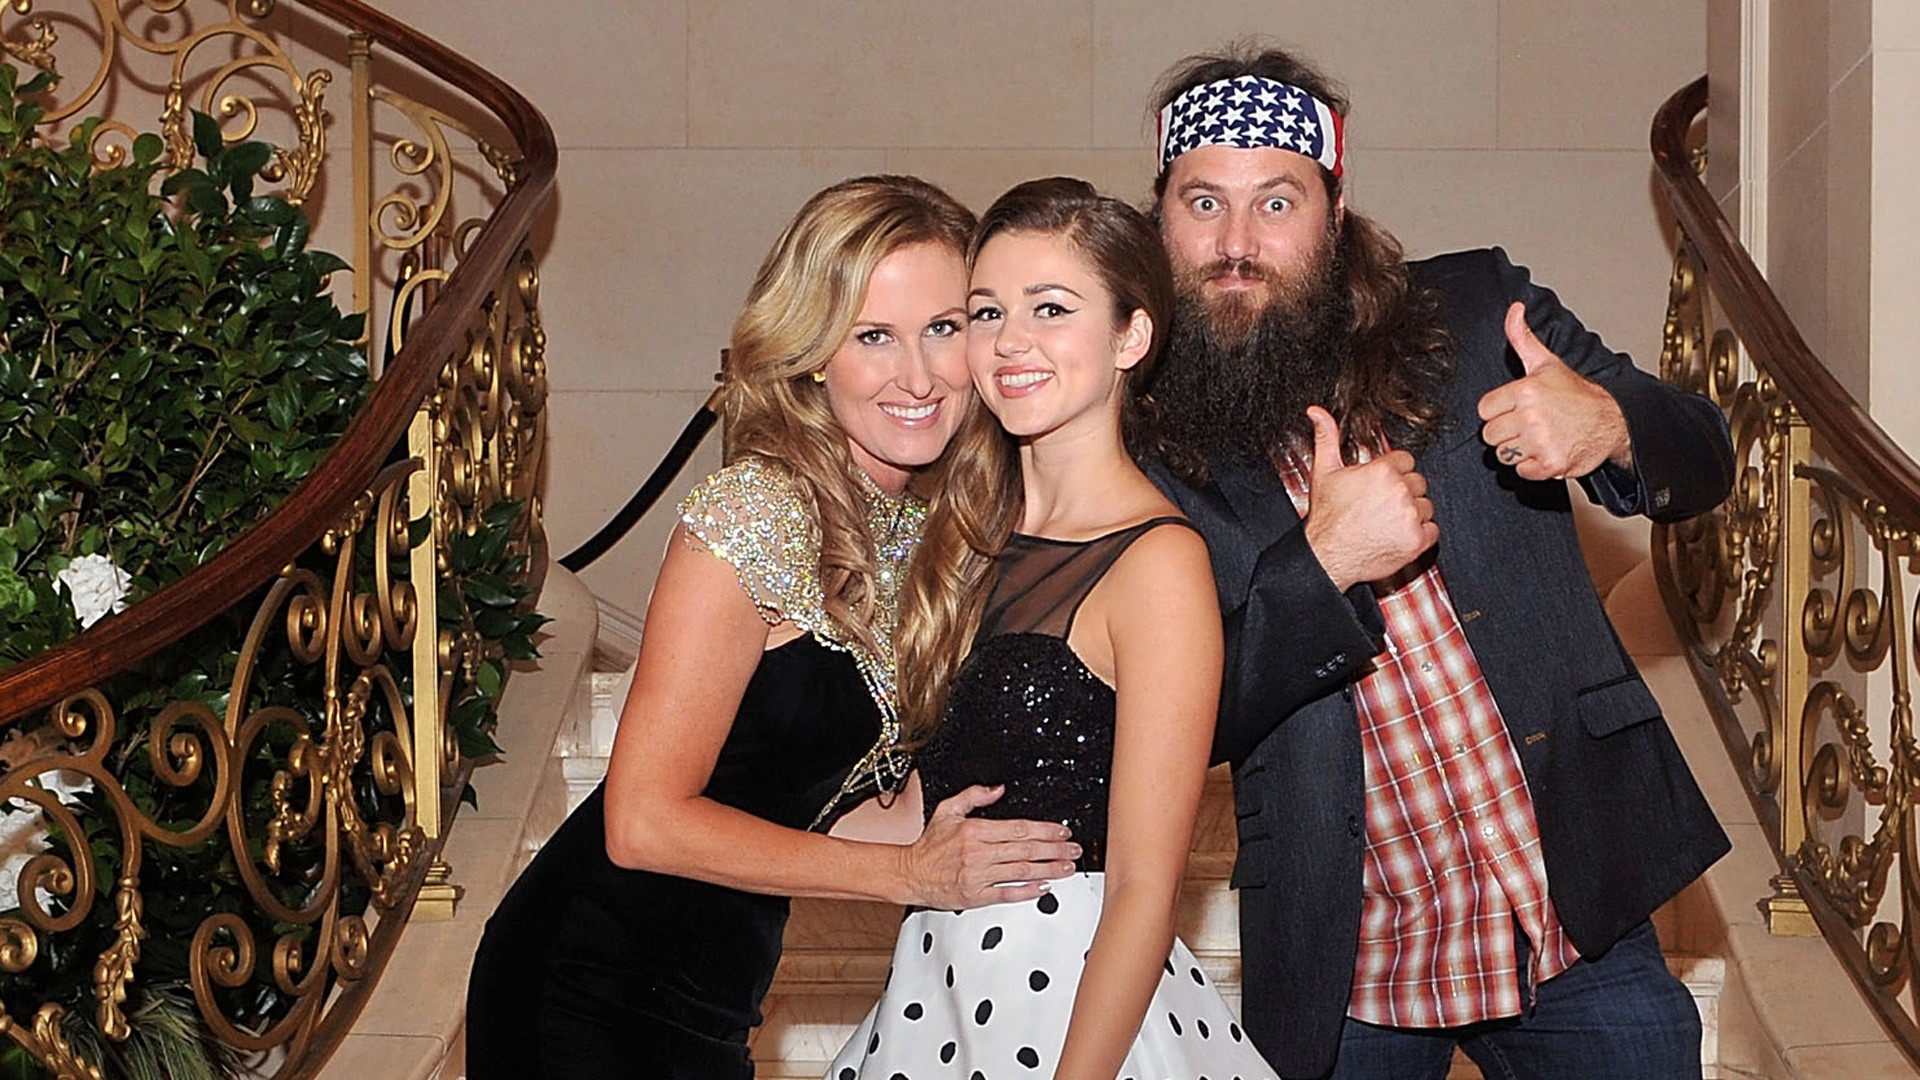 Res: 1920x1080, 'Duck Dynasty' star: We started show 'to get the message of God out there'  - TODAY.com